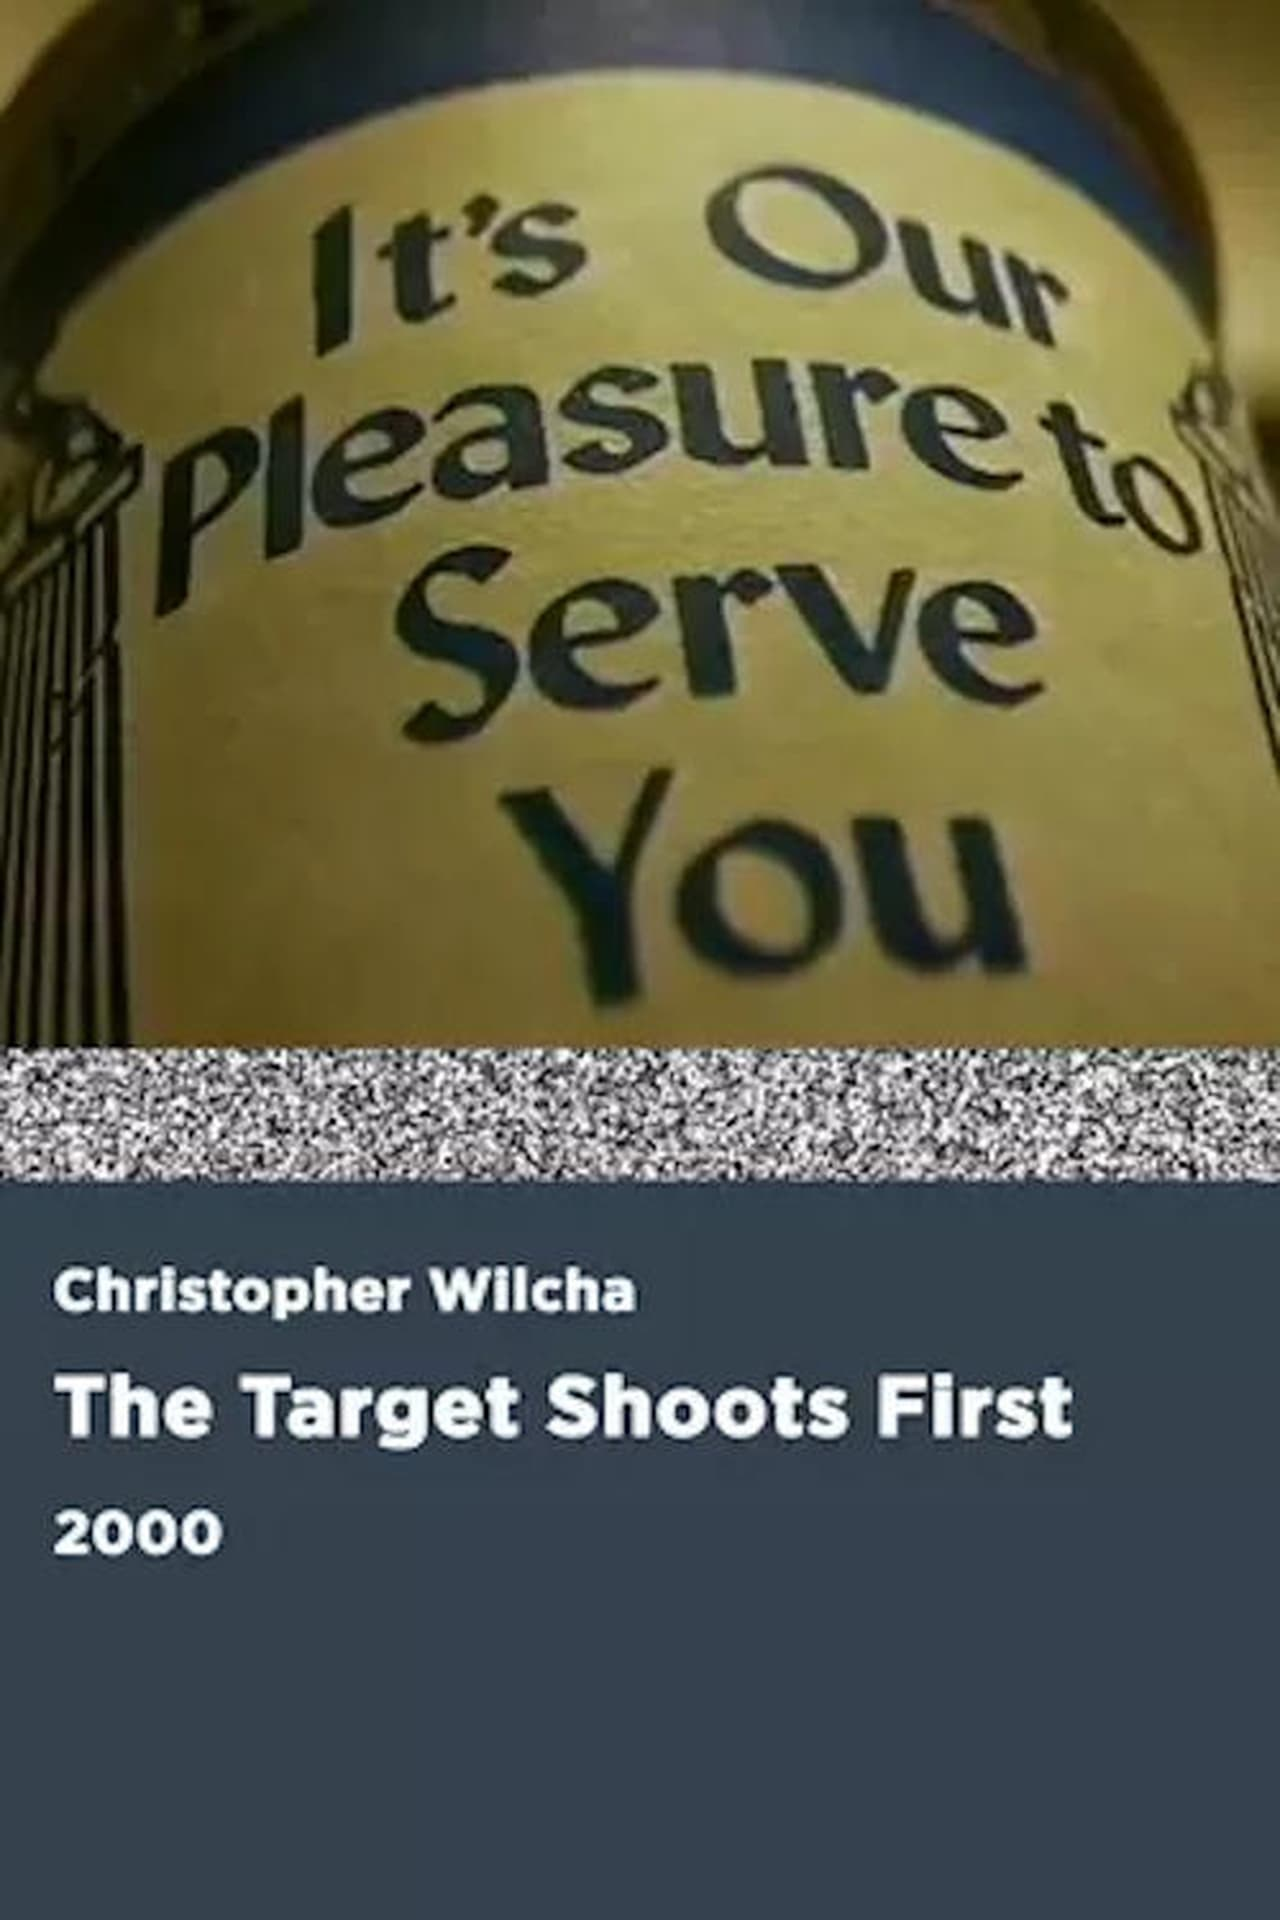 The Target Shoots First